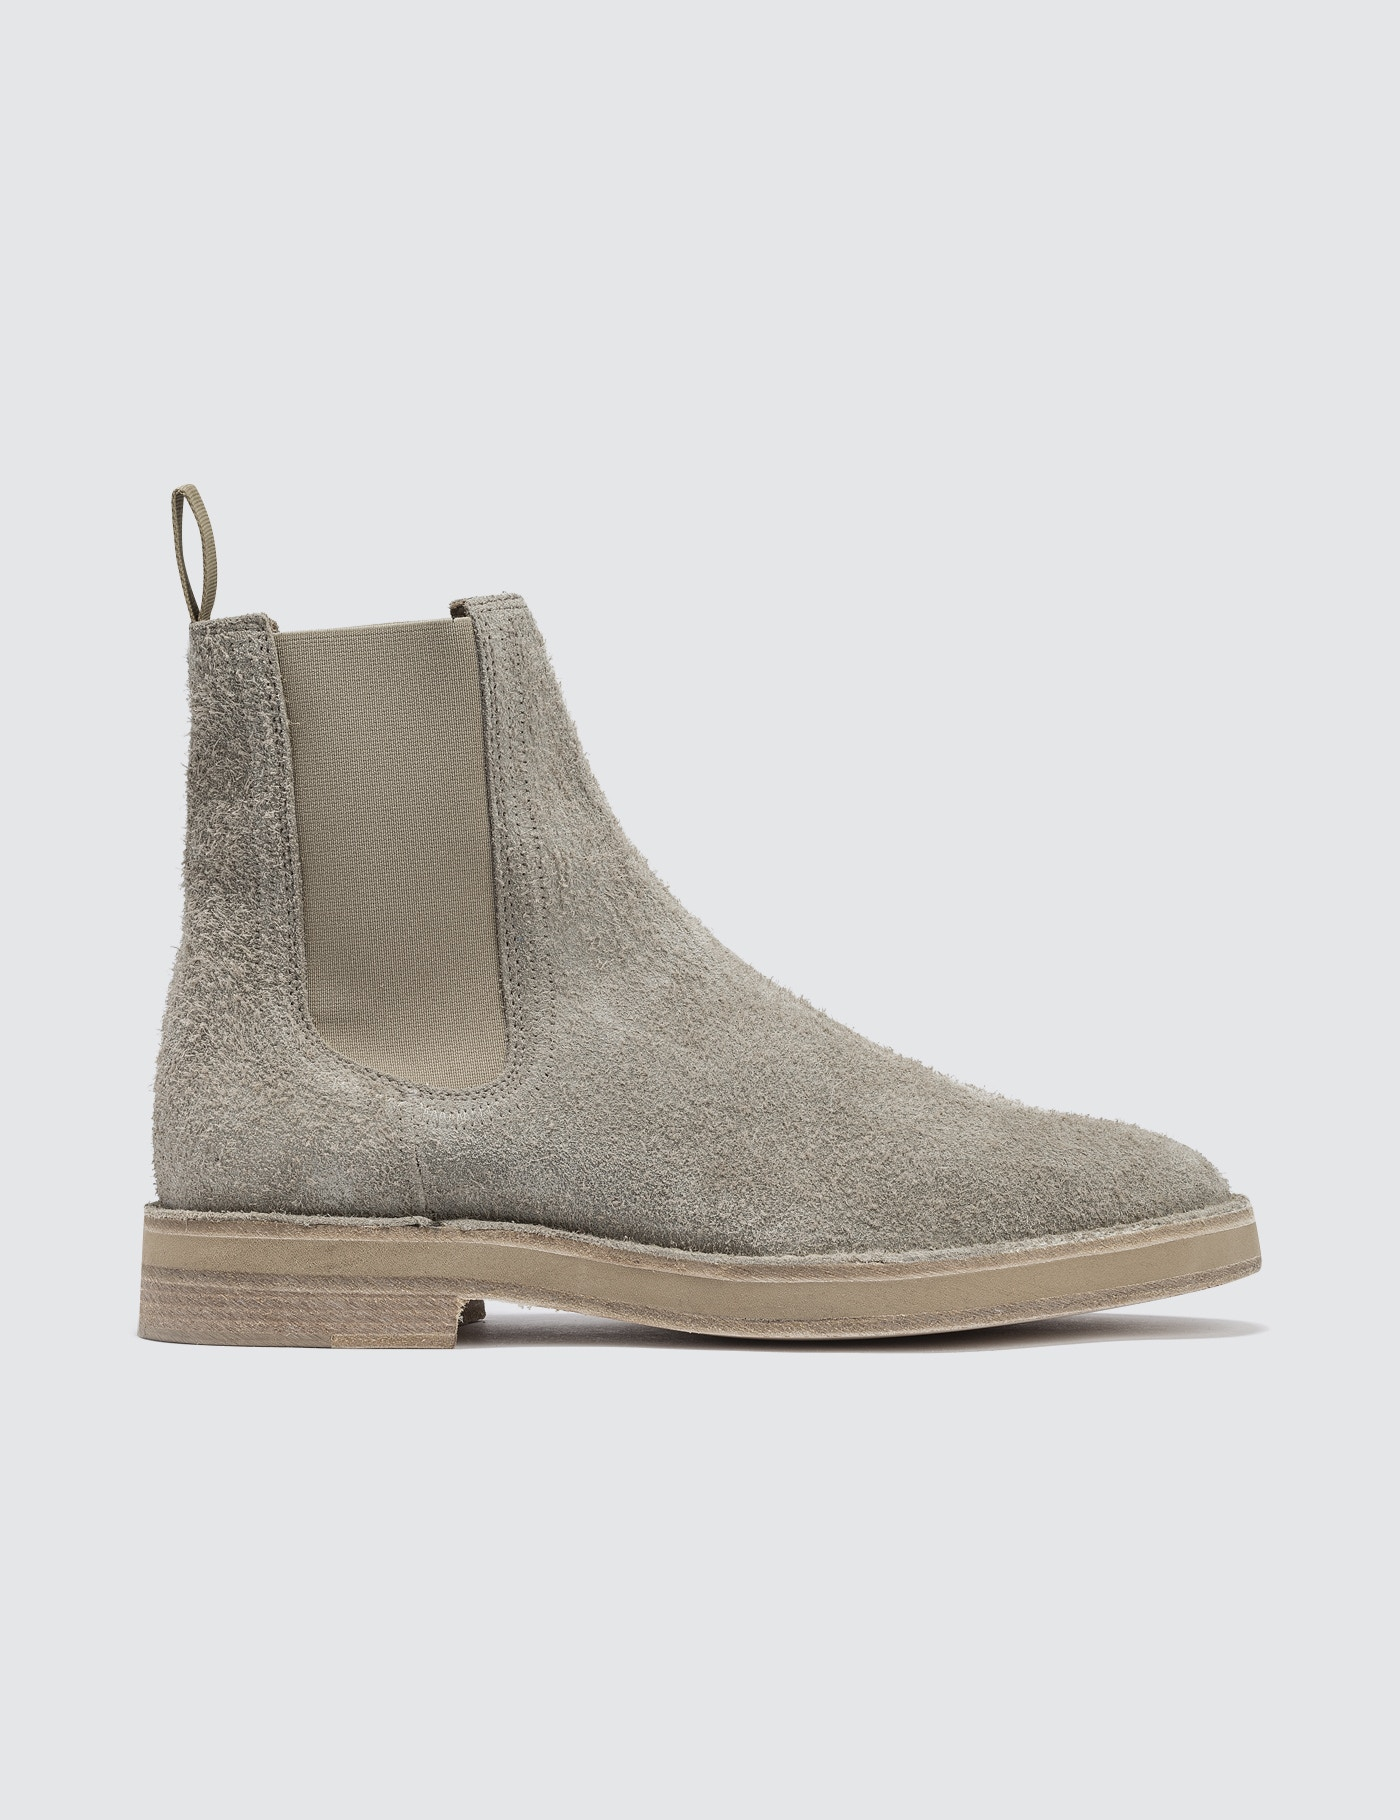 a8693688e76 Buy Original Yeezy Season 6 Chelsea Boot In Suede at Indonesia ...